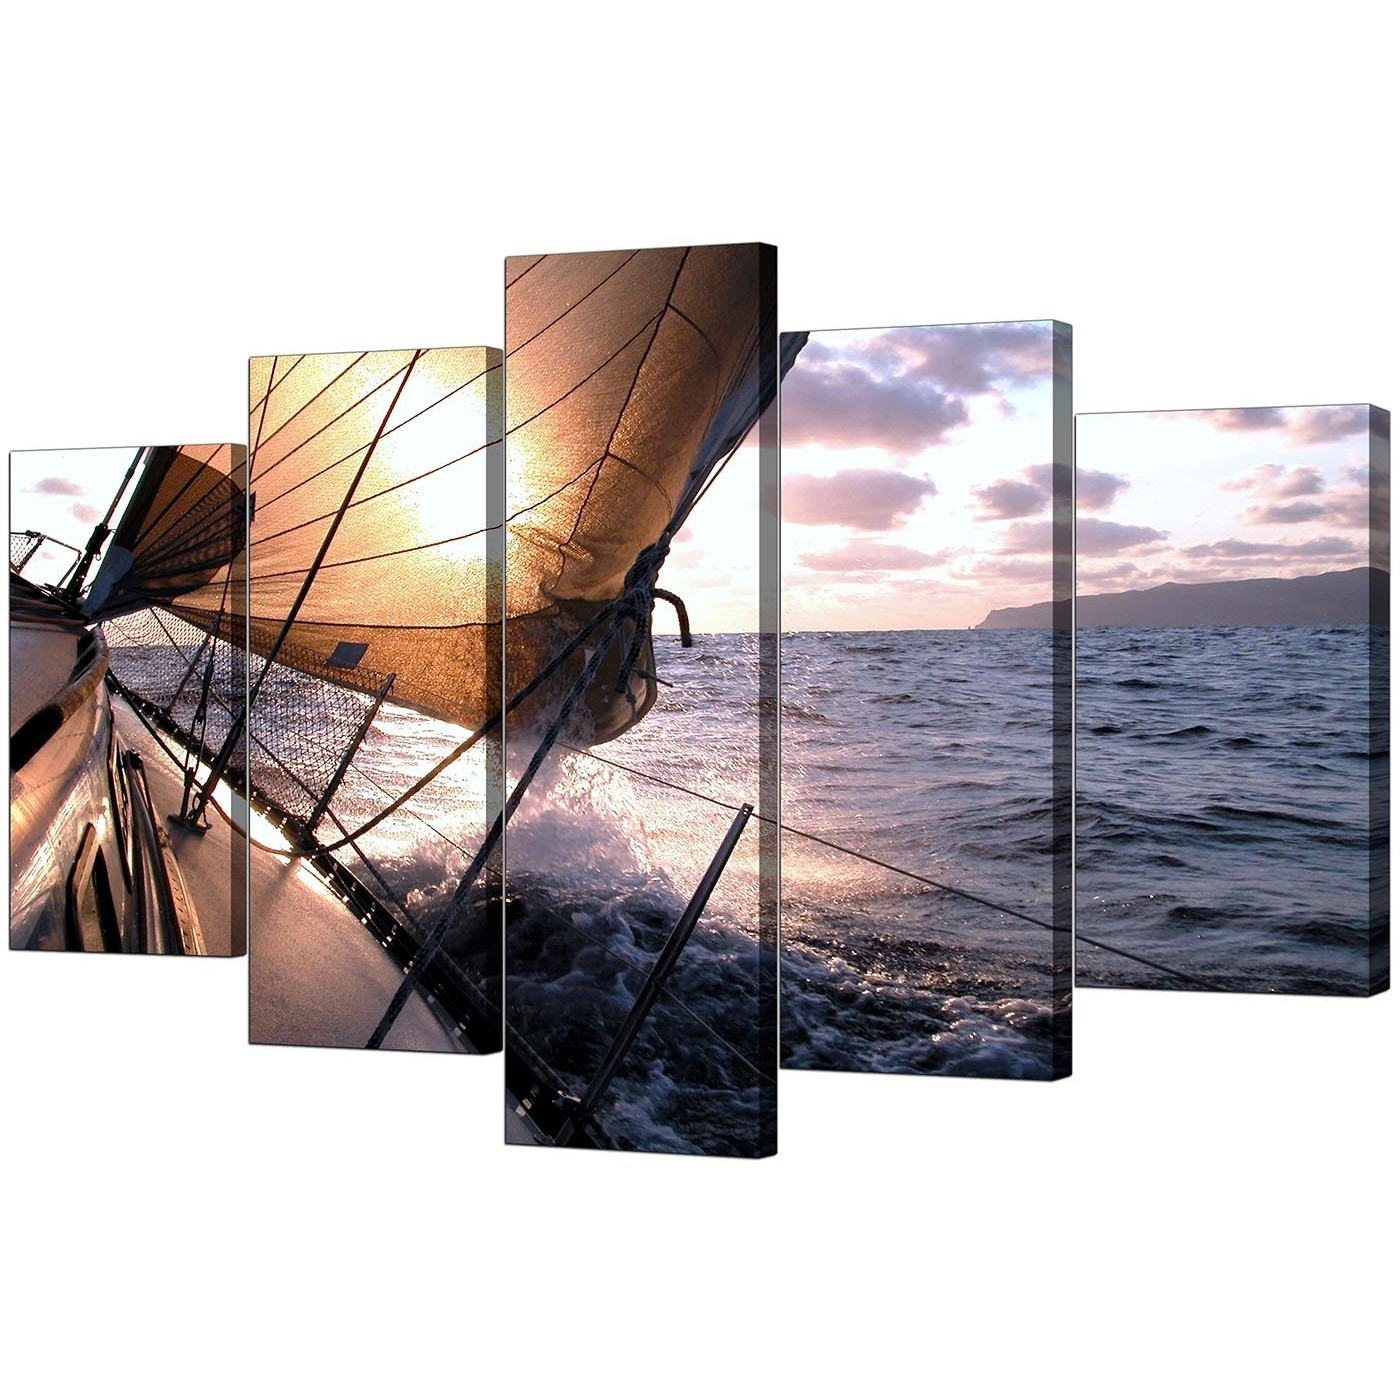 Fashionable Boat Canvas Prints Uk For Your Living Room – 5 Piece With 5 Piece Wall Art Canvas (View 6 of 15)